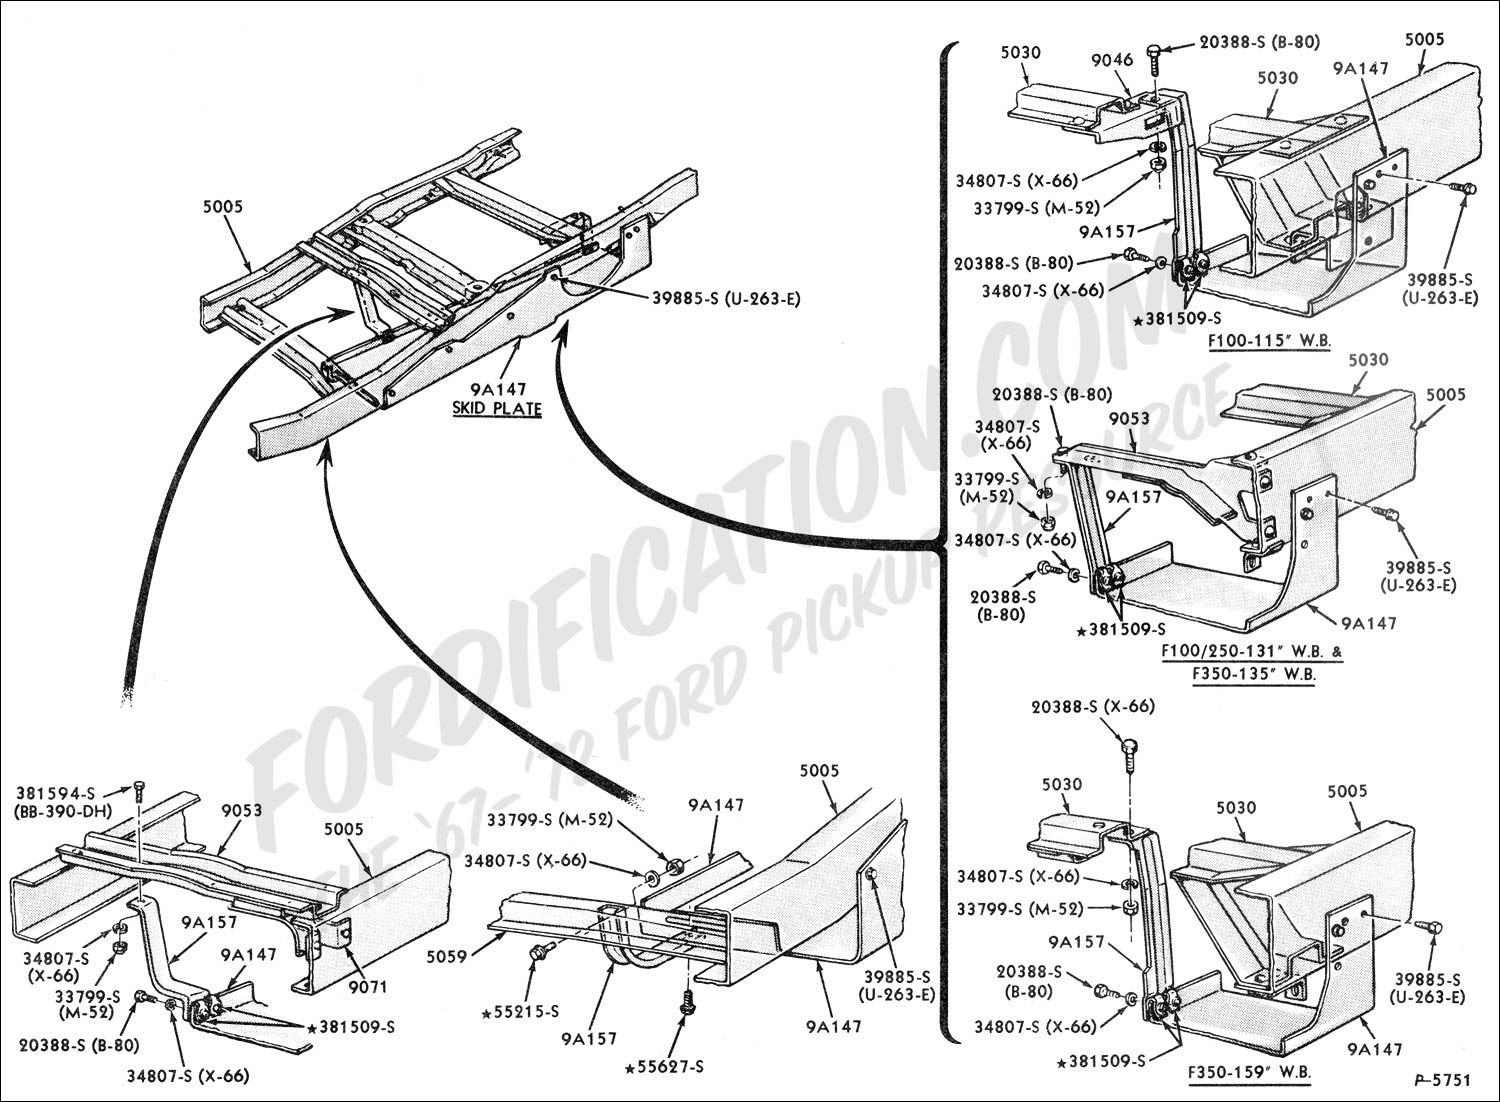 1990 ford fuel system diagram msi n1996 motherboard power 89 f150 pump location html get free image